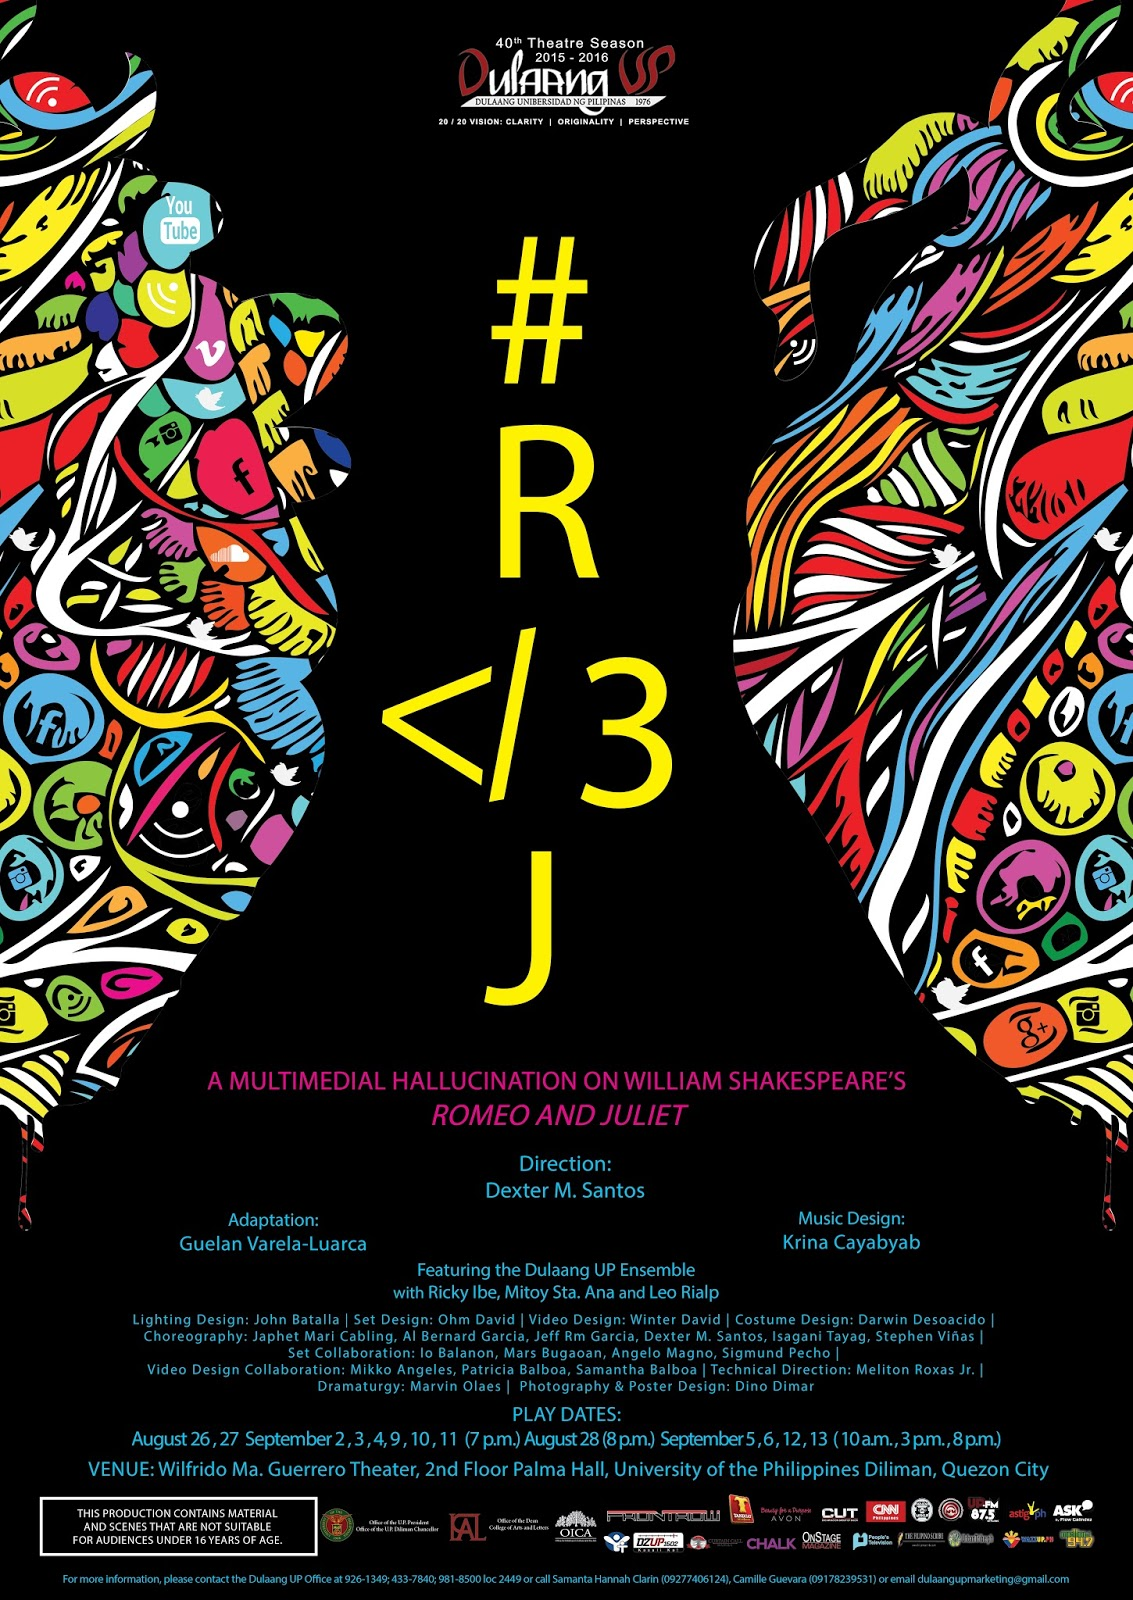 R 3J Retells The Star Crossed Lovers Narrative Transforming Verona Into A Concrete Jungle At Heart Of Metro Manila Teeming With Corruption Revolt